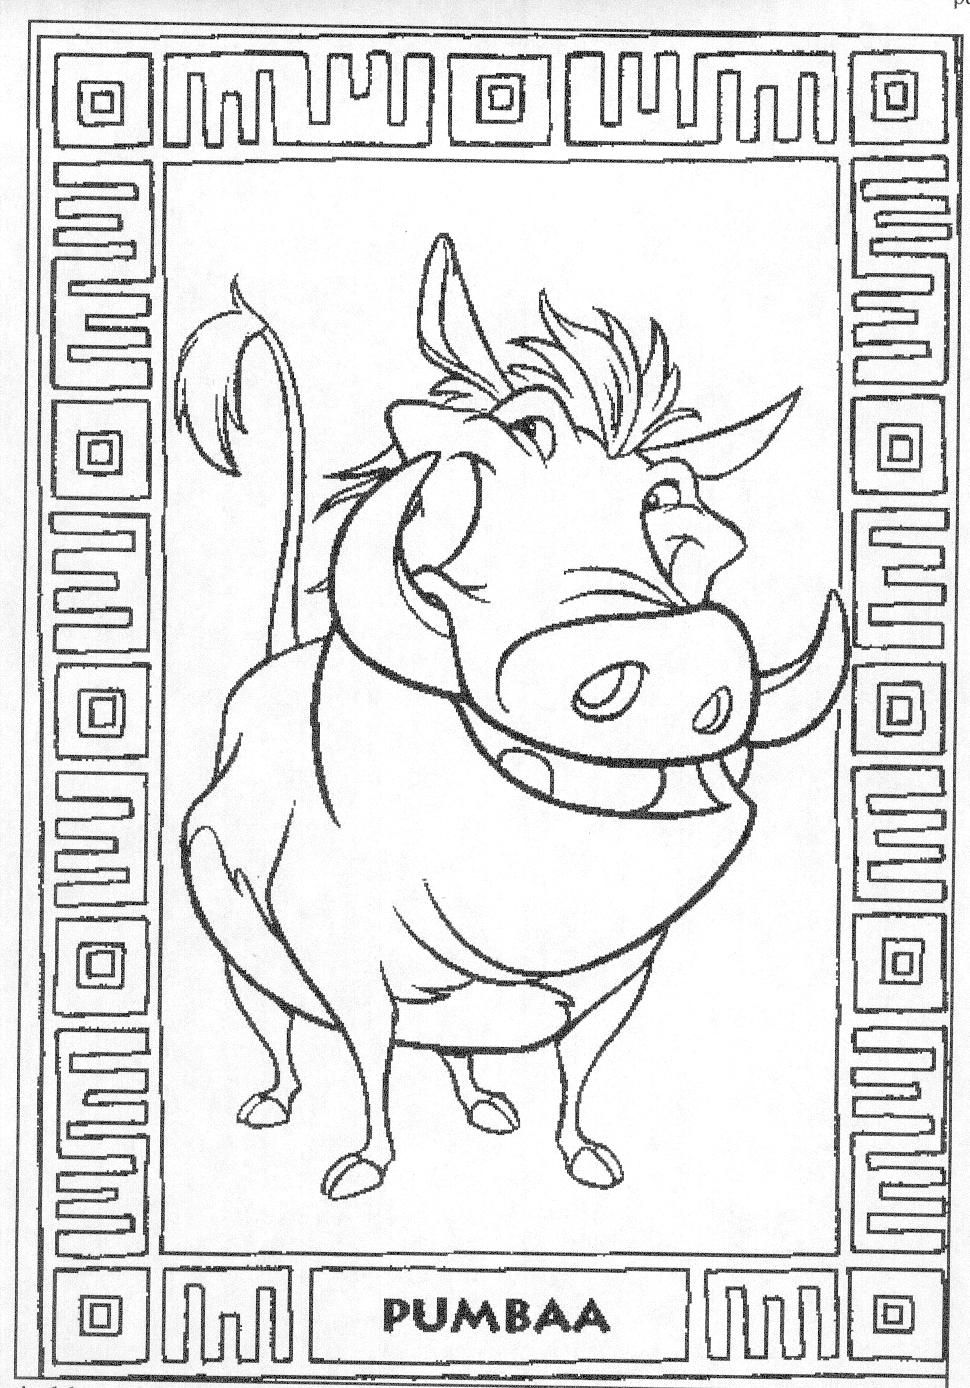 The Lion King Coloring Pages Coloringpages1001